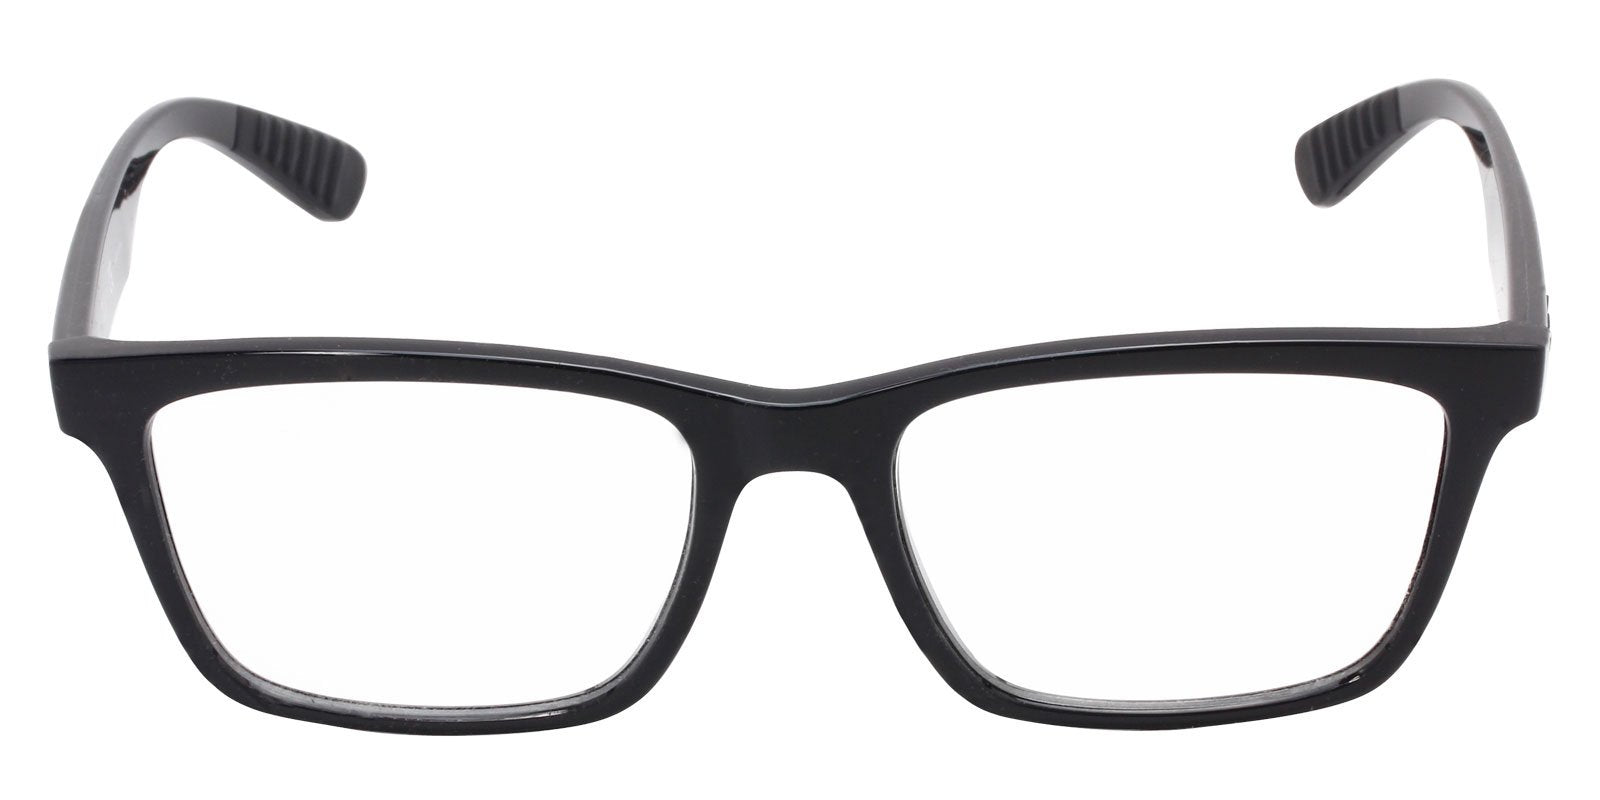 Ray Ban Rx - RX7025 Black Rectangular Men, Women Eyeglasses - 55mm-Eyeglasses-Designer Eyes